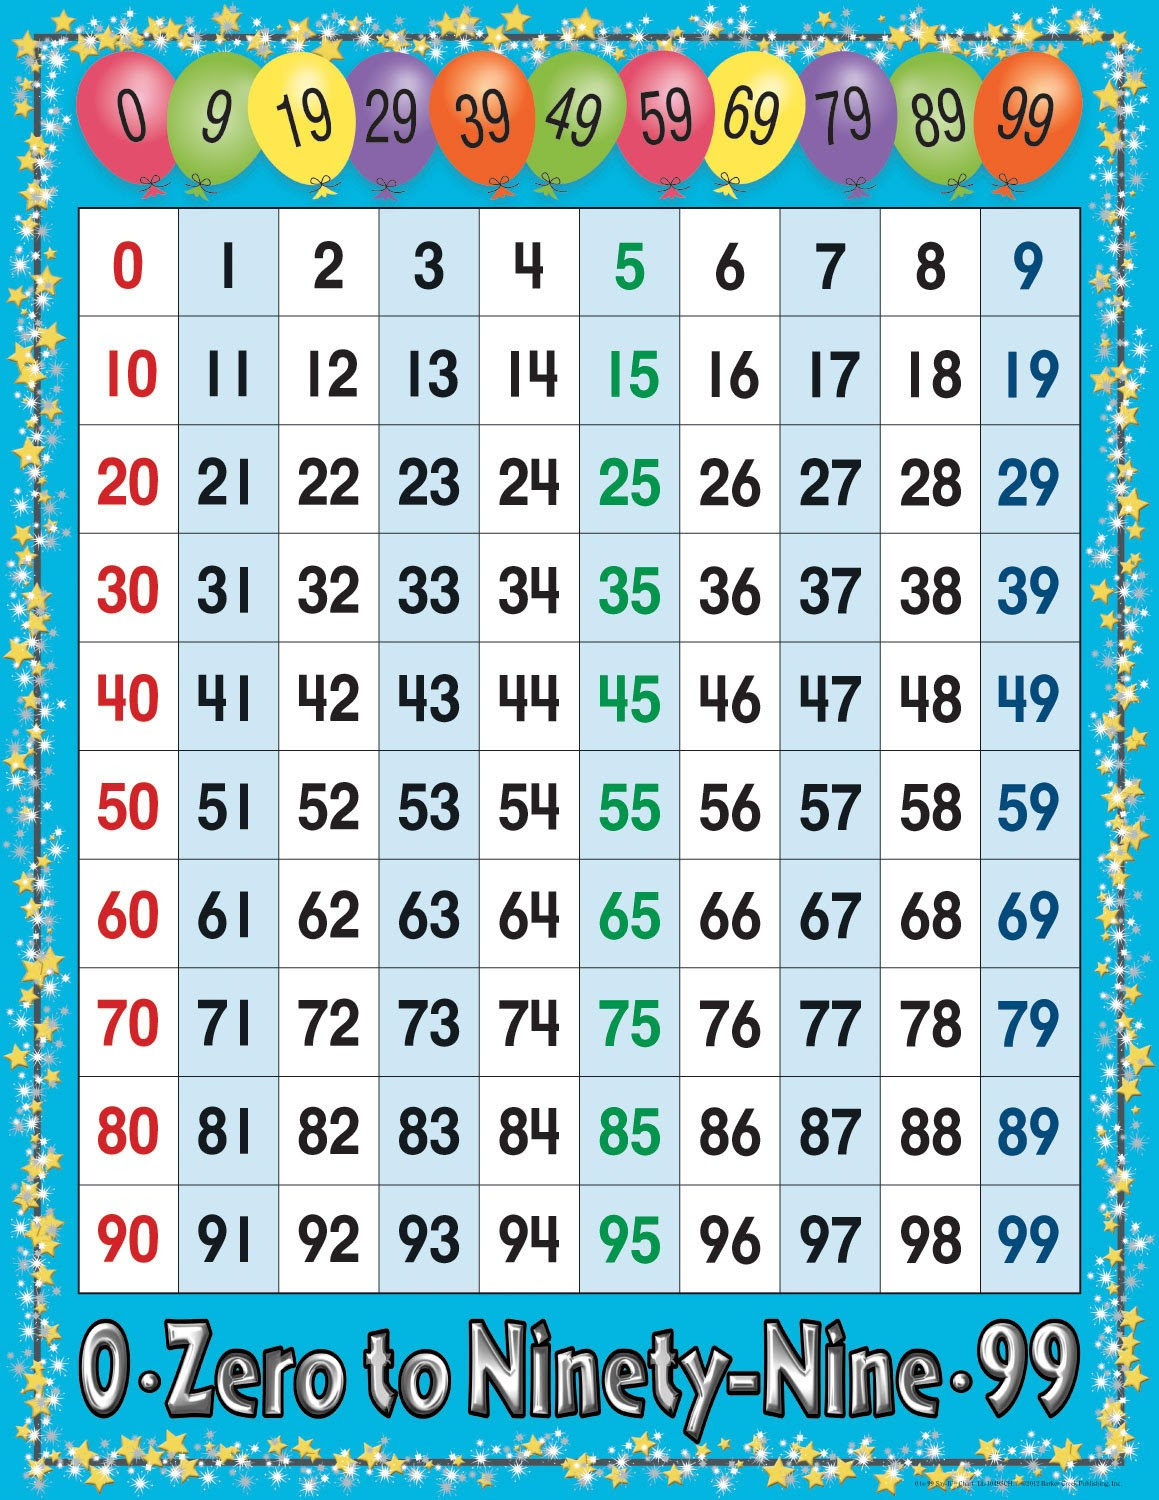 Number Chart - Numbers 0-99 | Calloway House